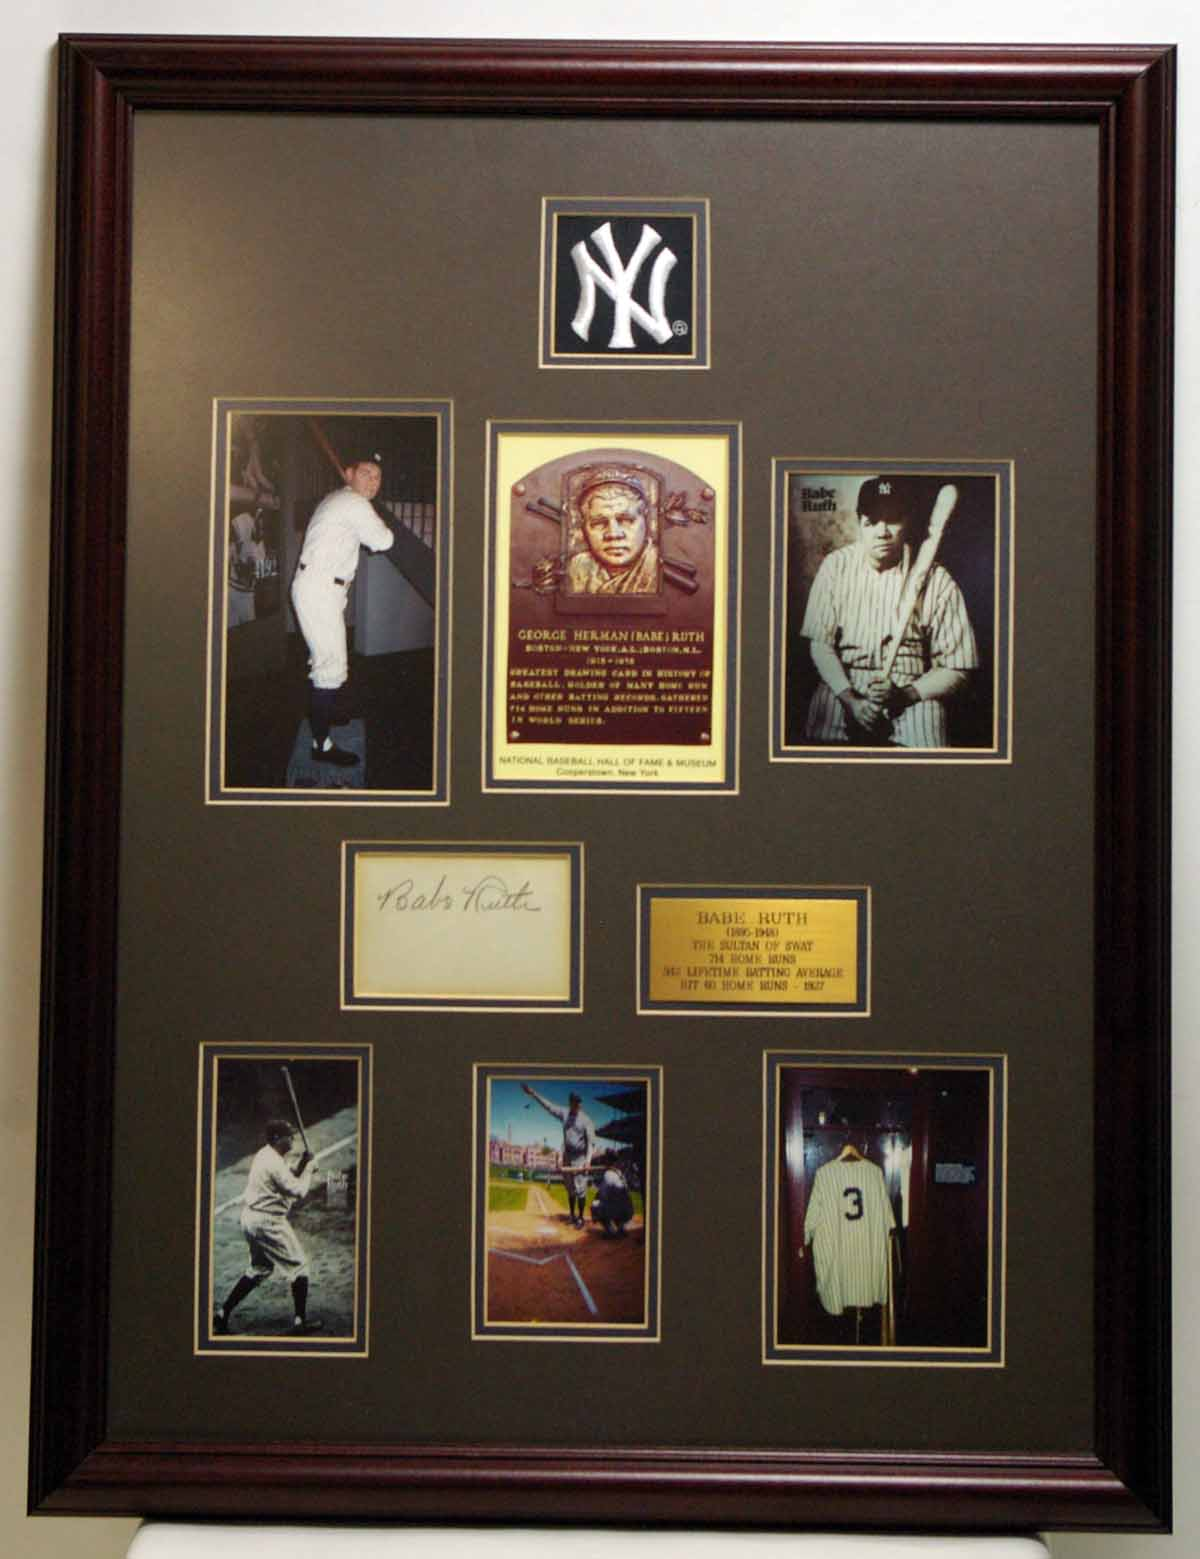 Babe Ruth Masterpiece Collage